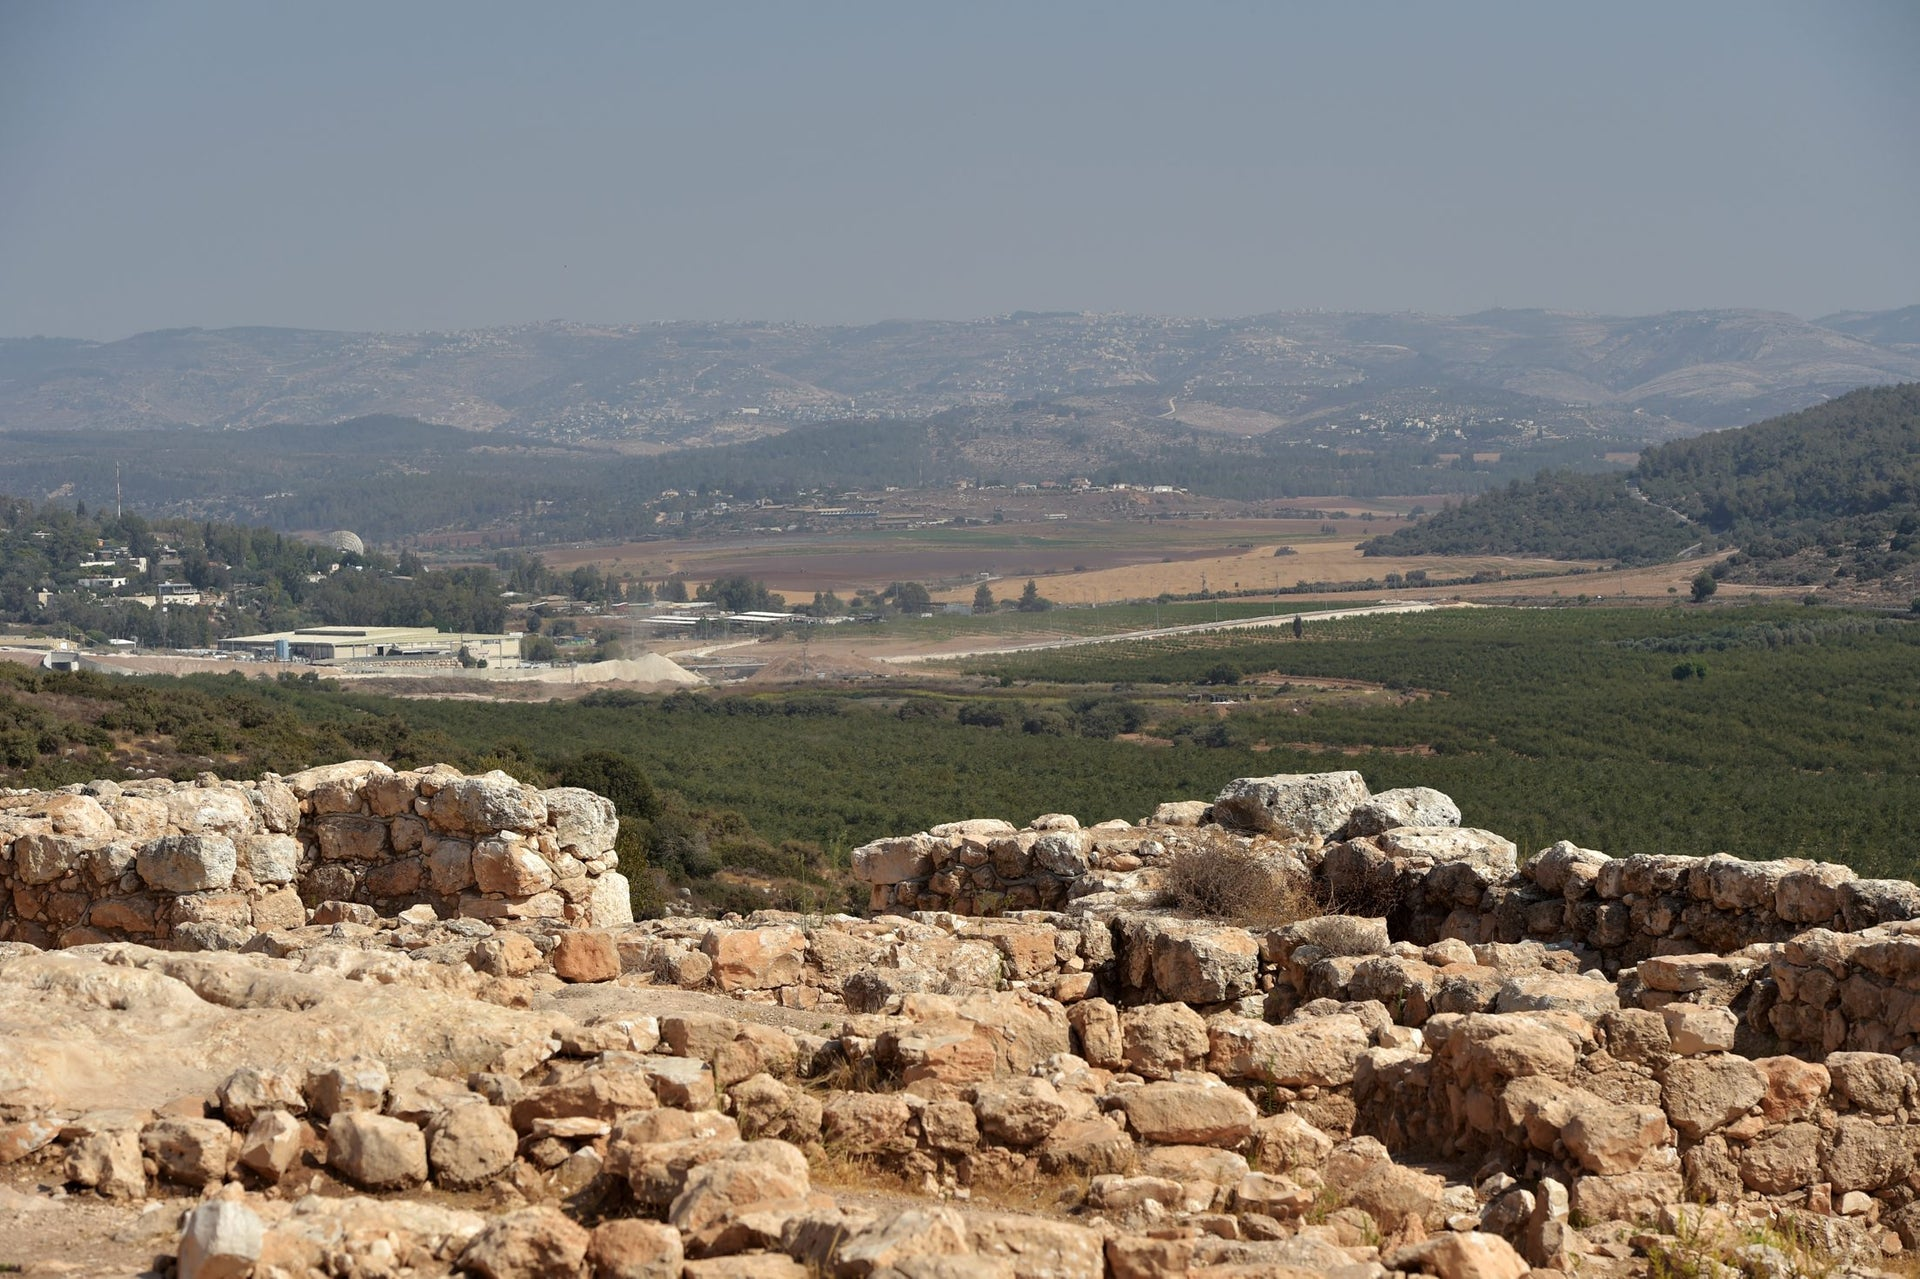 The fortress at Qeiyafa only survived some 20 or 30 years, but turns out, based on dating olive pits, to have coexisted with the purported United Kingdom. Could it be evidence of a polity powerful enough to built a fortress of this kind outside Jerusalem?